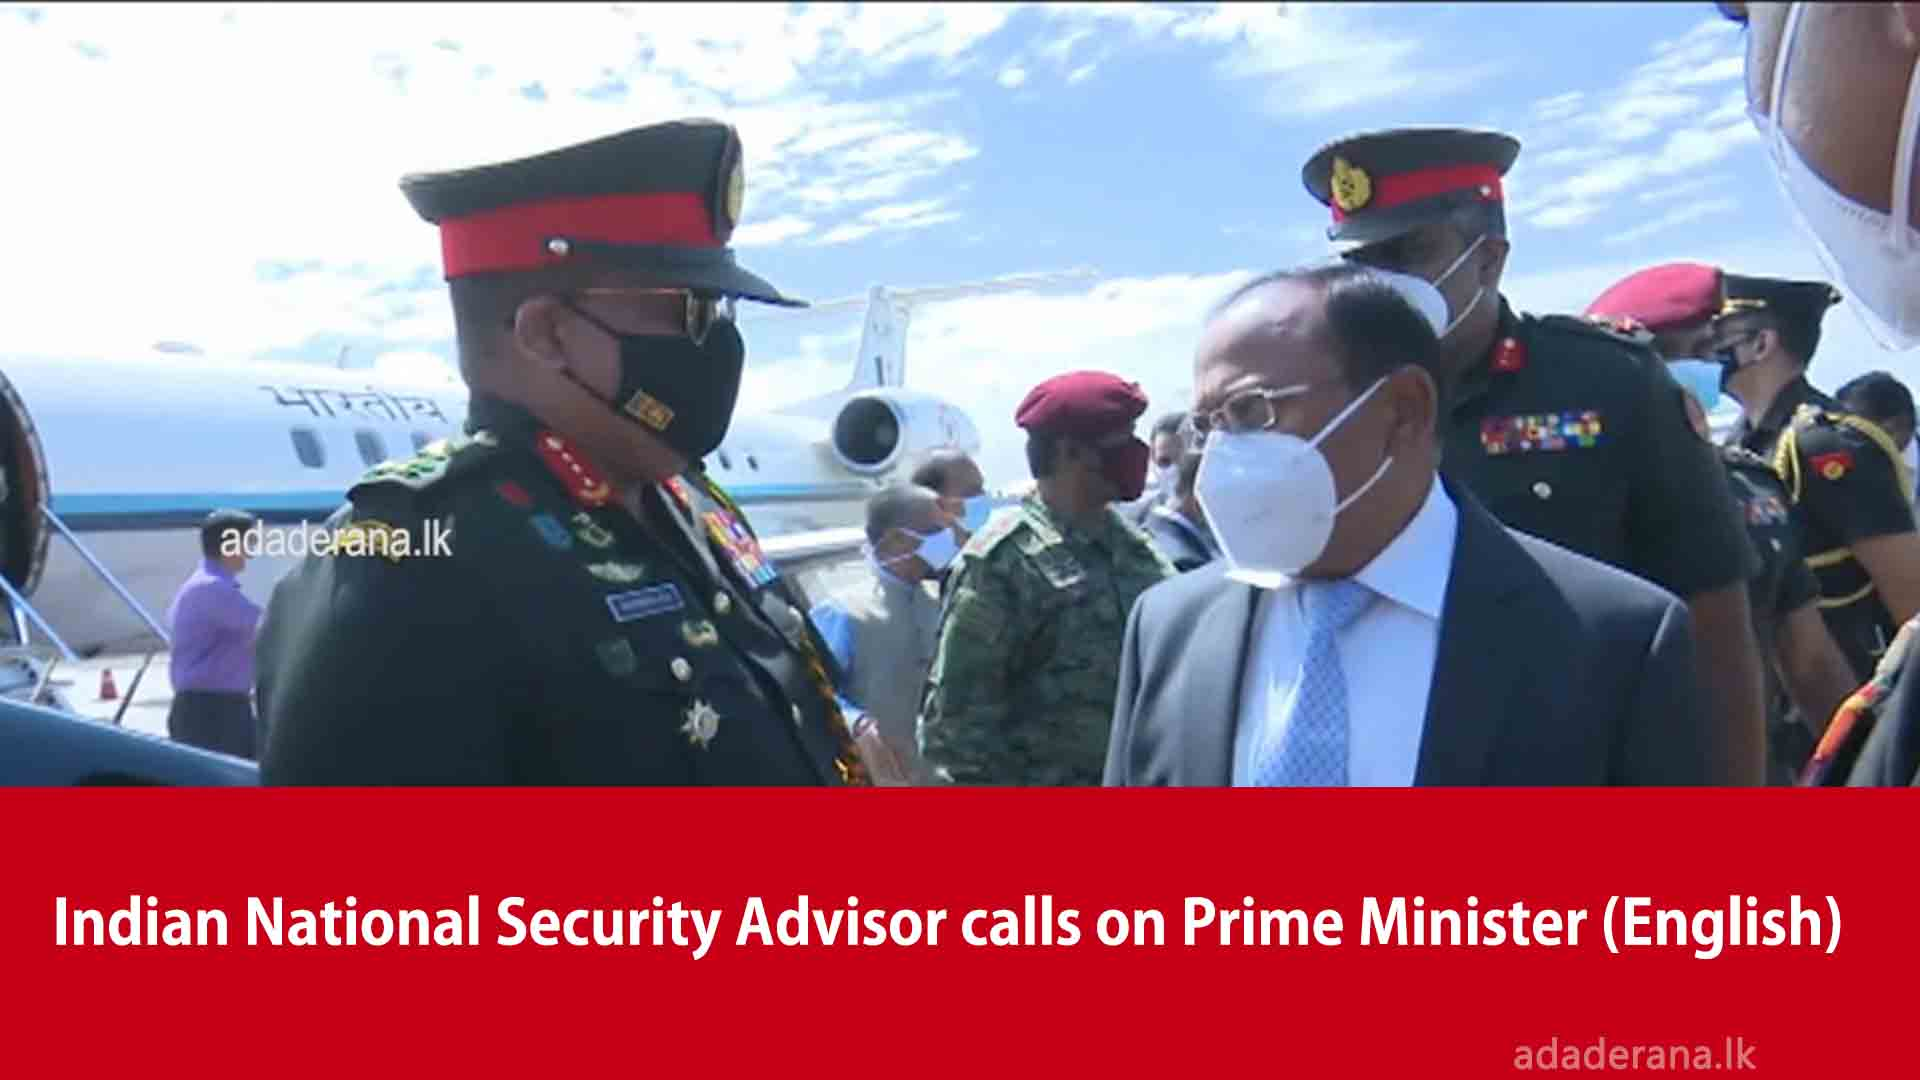 Indian National Security Advisor calls on Prime Minister (English)